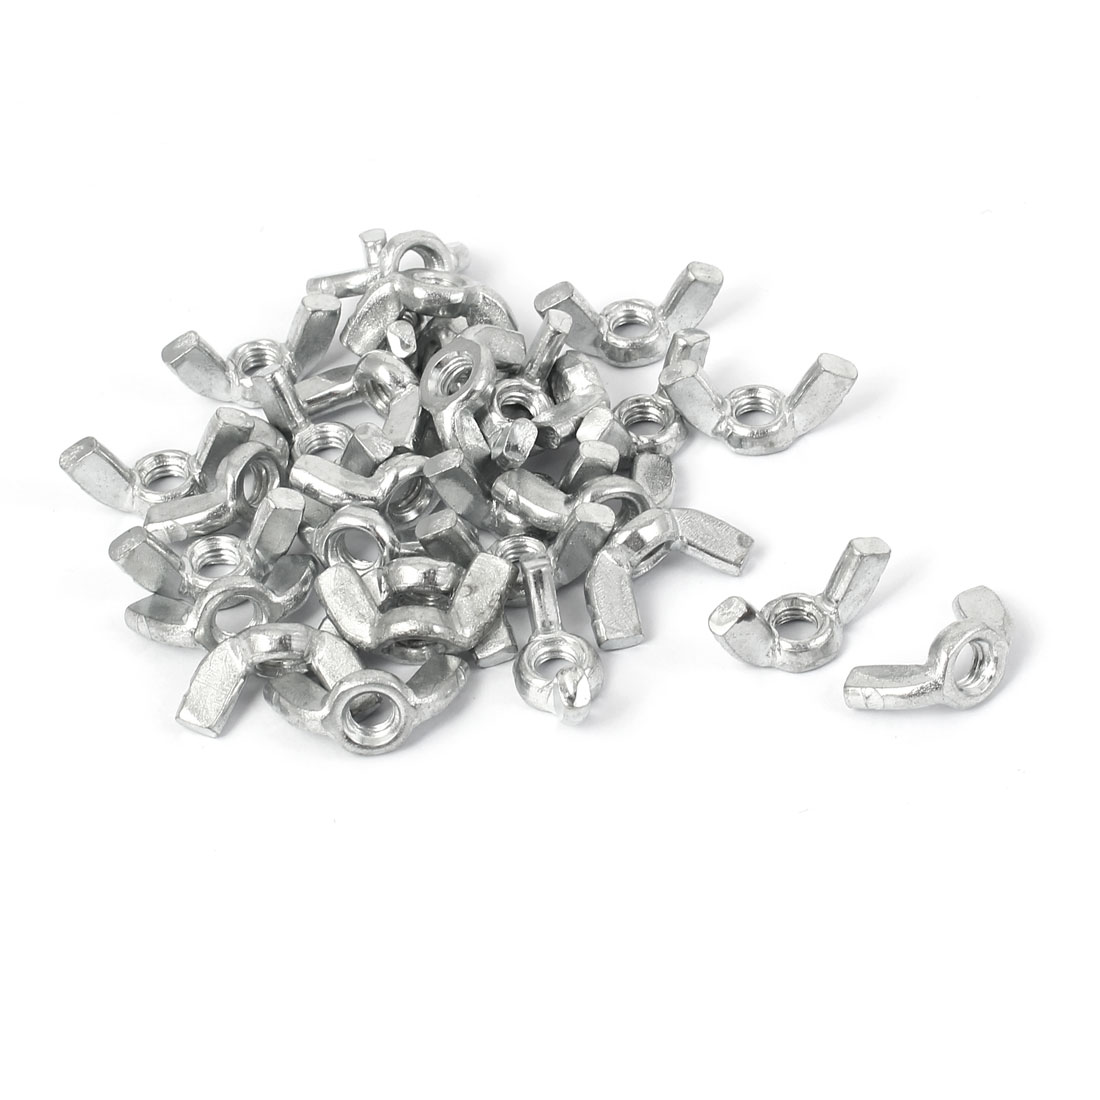 M5 Female Thread Metal Wing Nut Hardware Fasteners Silver Tone 30pcs